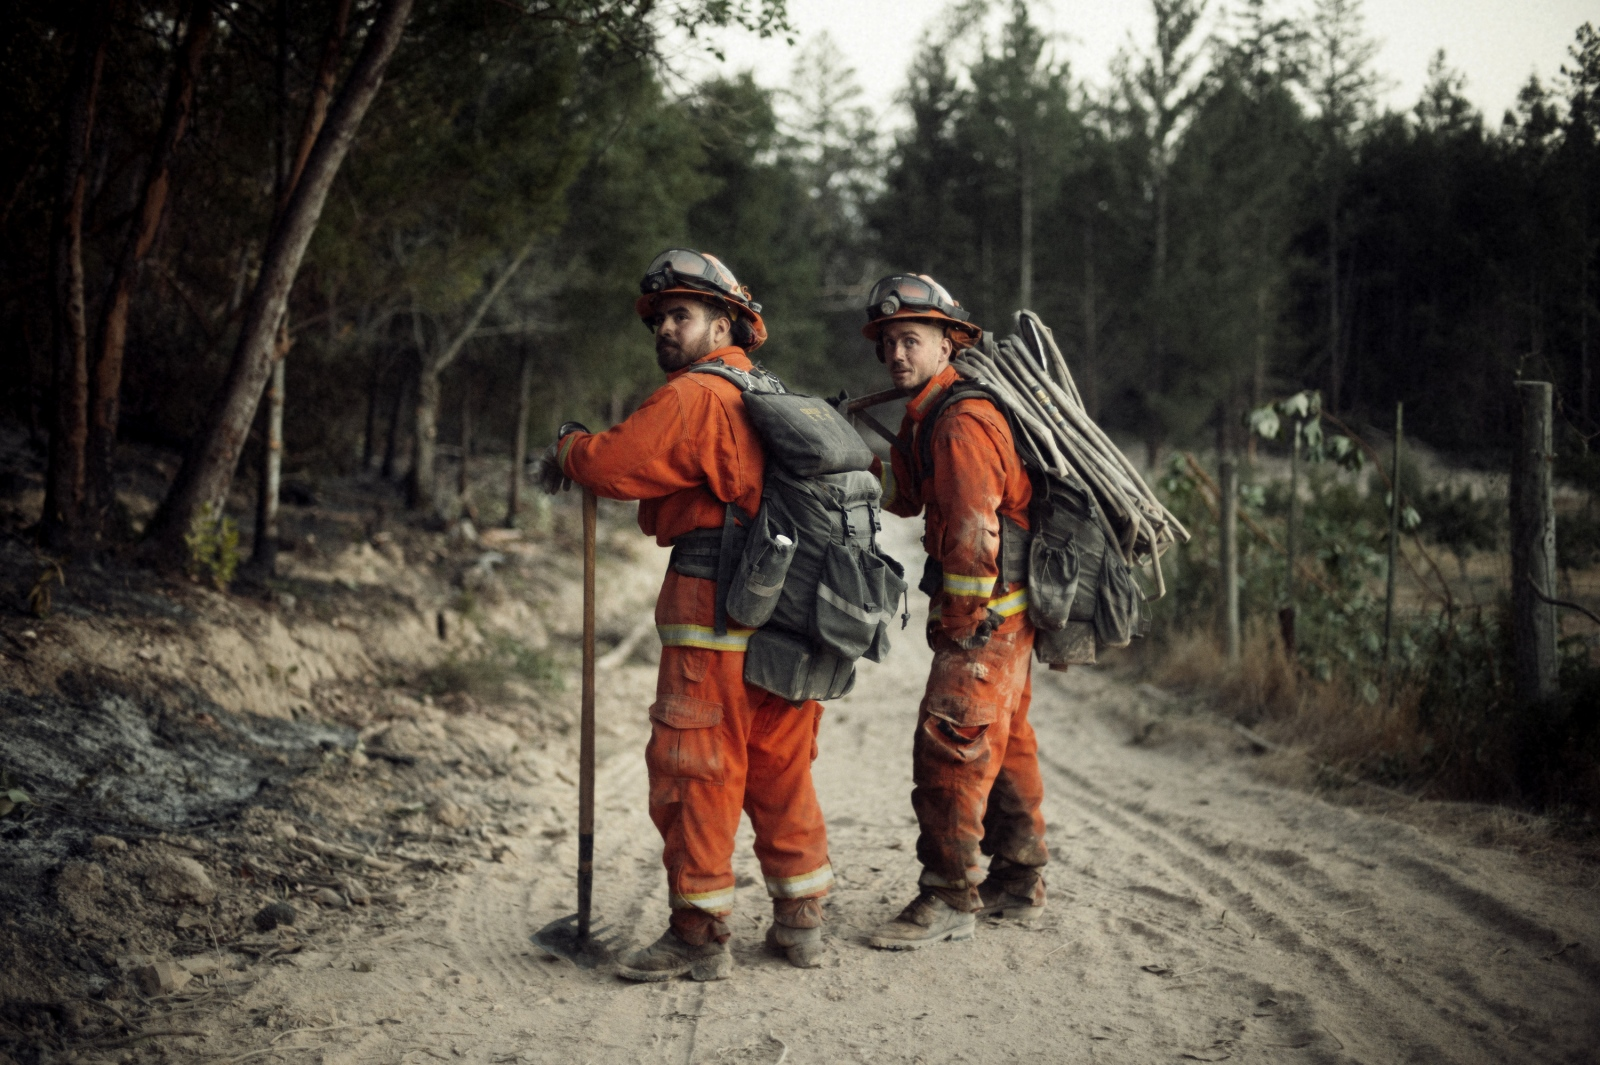 Inmate firefighters from the Antelope fire crew take a breather while carrying gear off of a burning hill during the wine country fires.